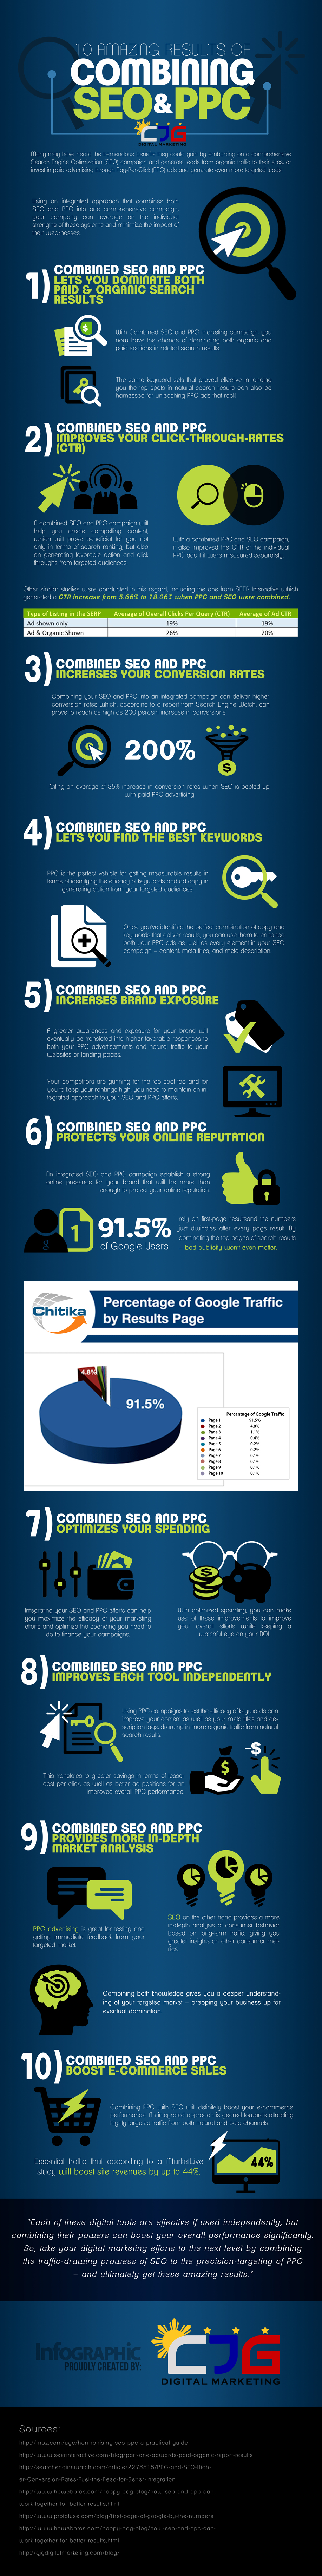 10 Amazing Results of Combining SEO and PPC (Infographic) - An Infographic from CJG Digital Marketing